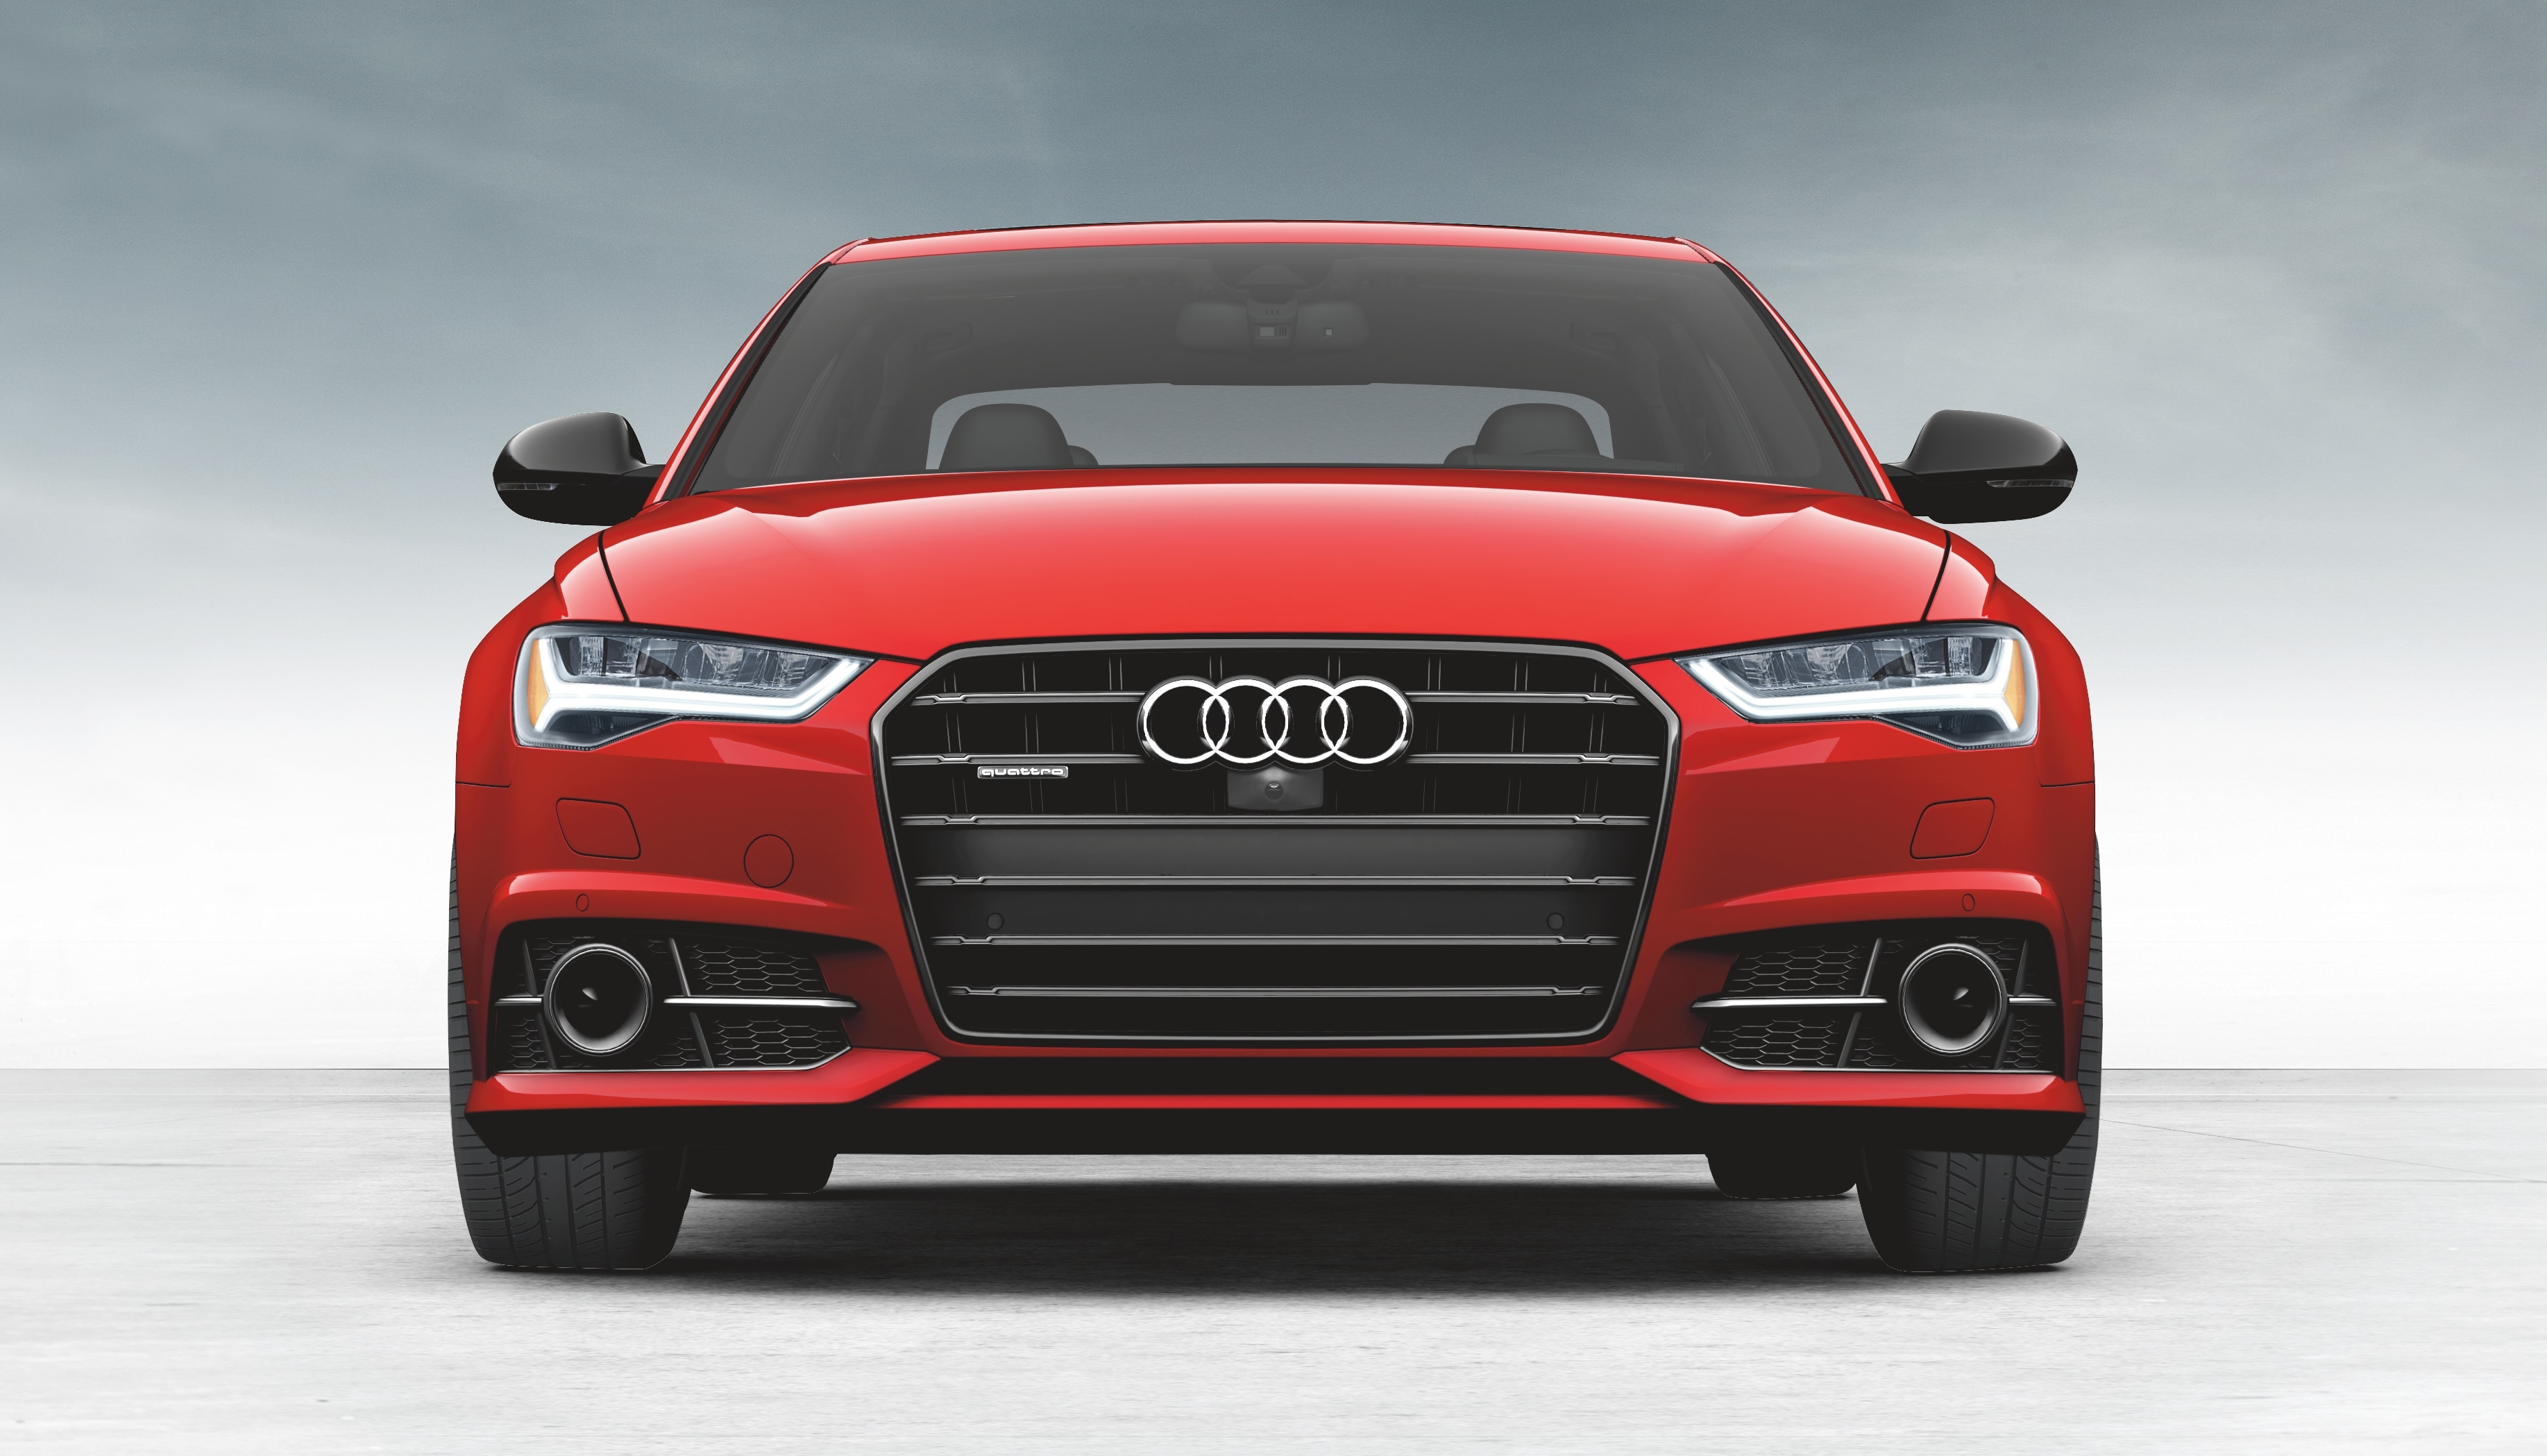 new specials lease mission content county audi in htm viejo orange